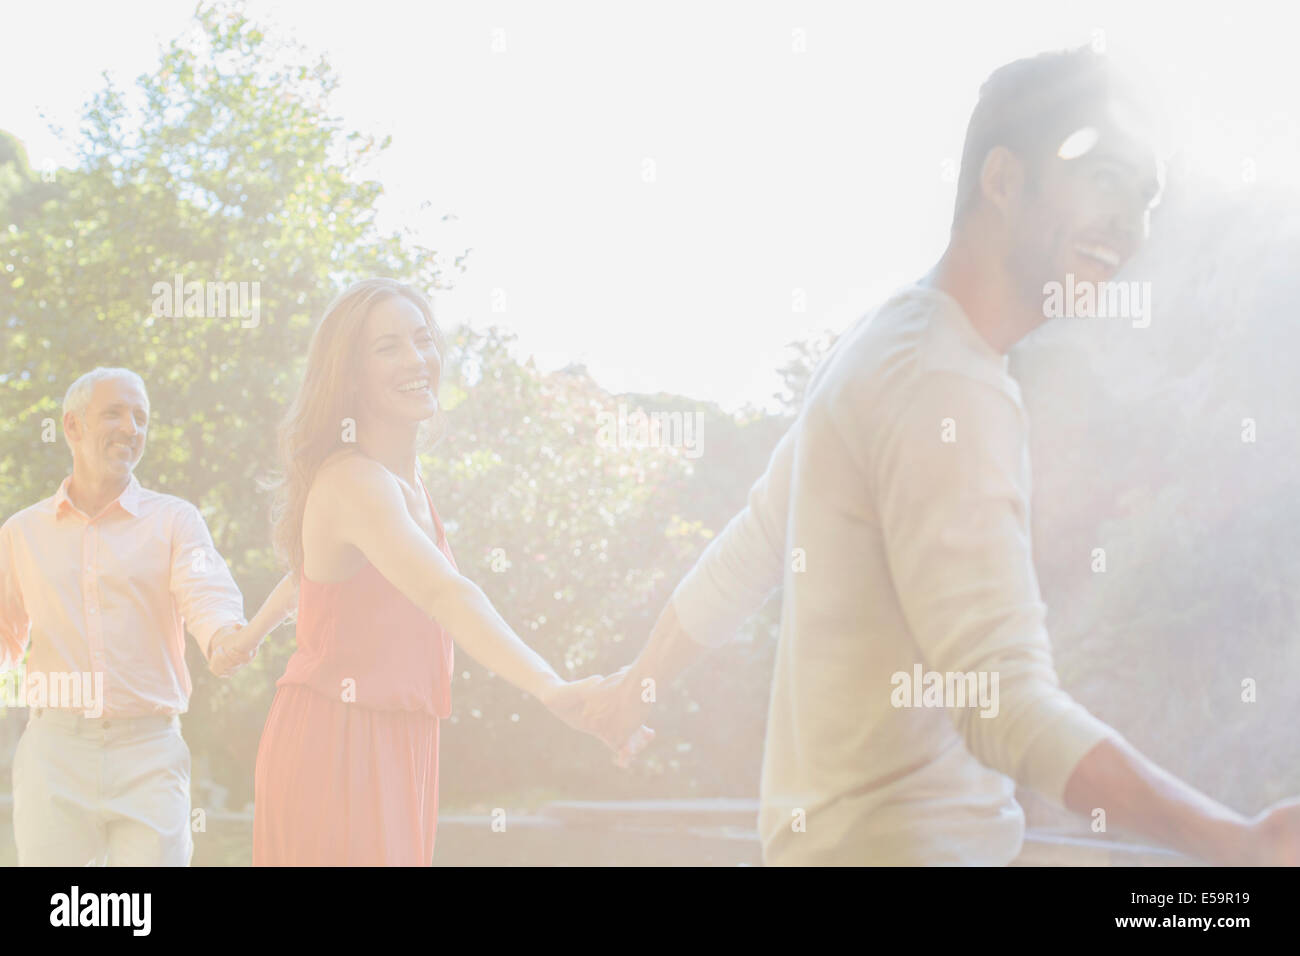 Sunbeam sur friends holding hands outdoors Photo Stock